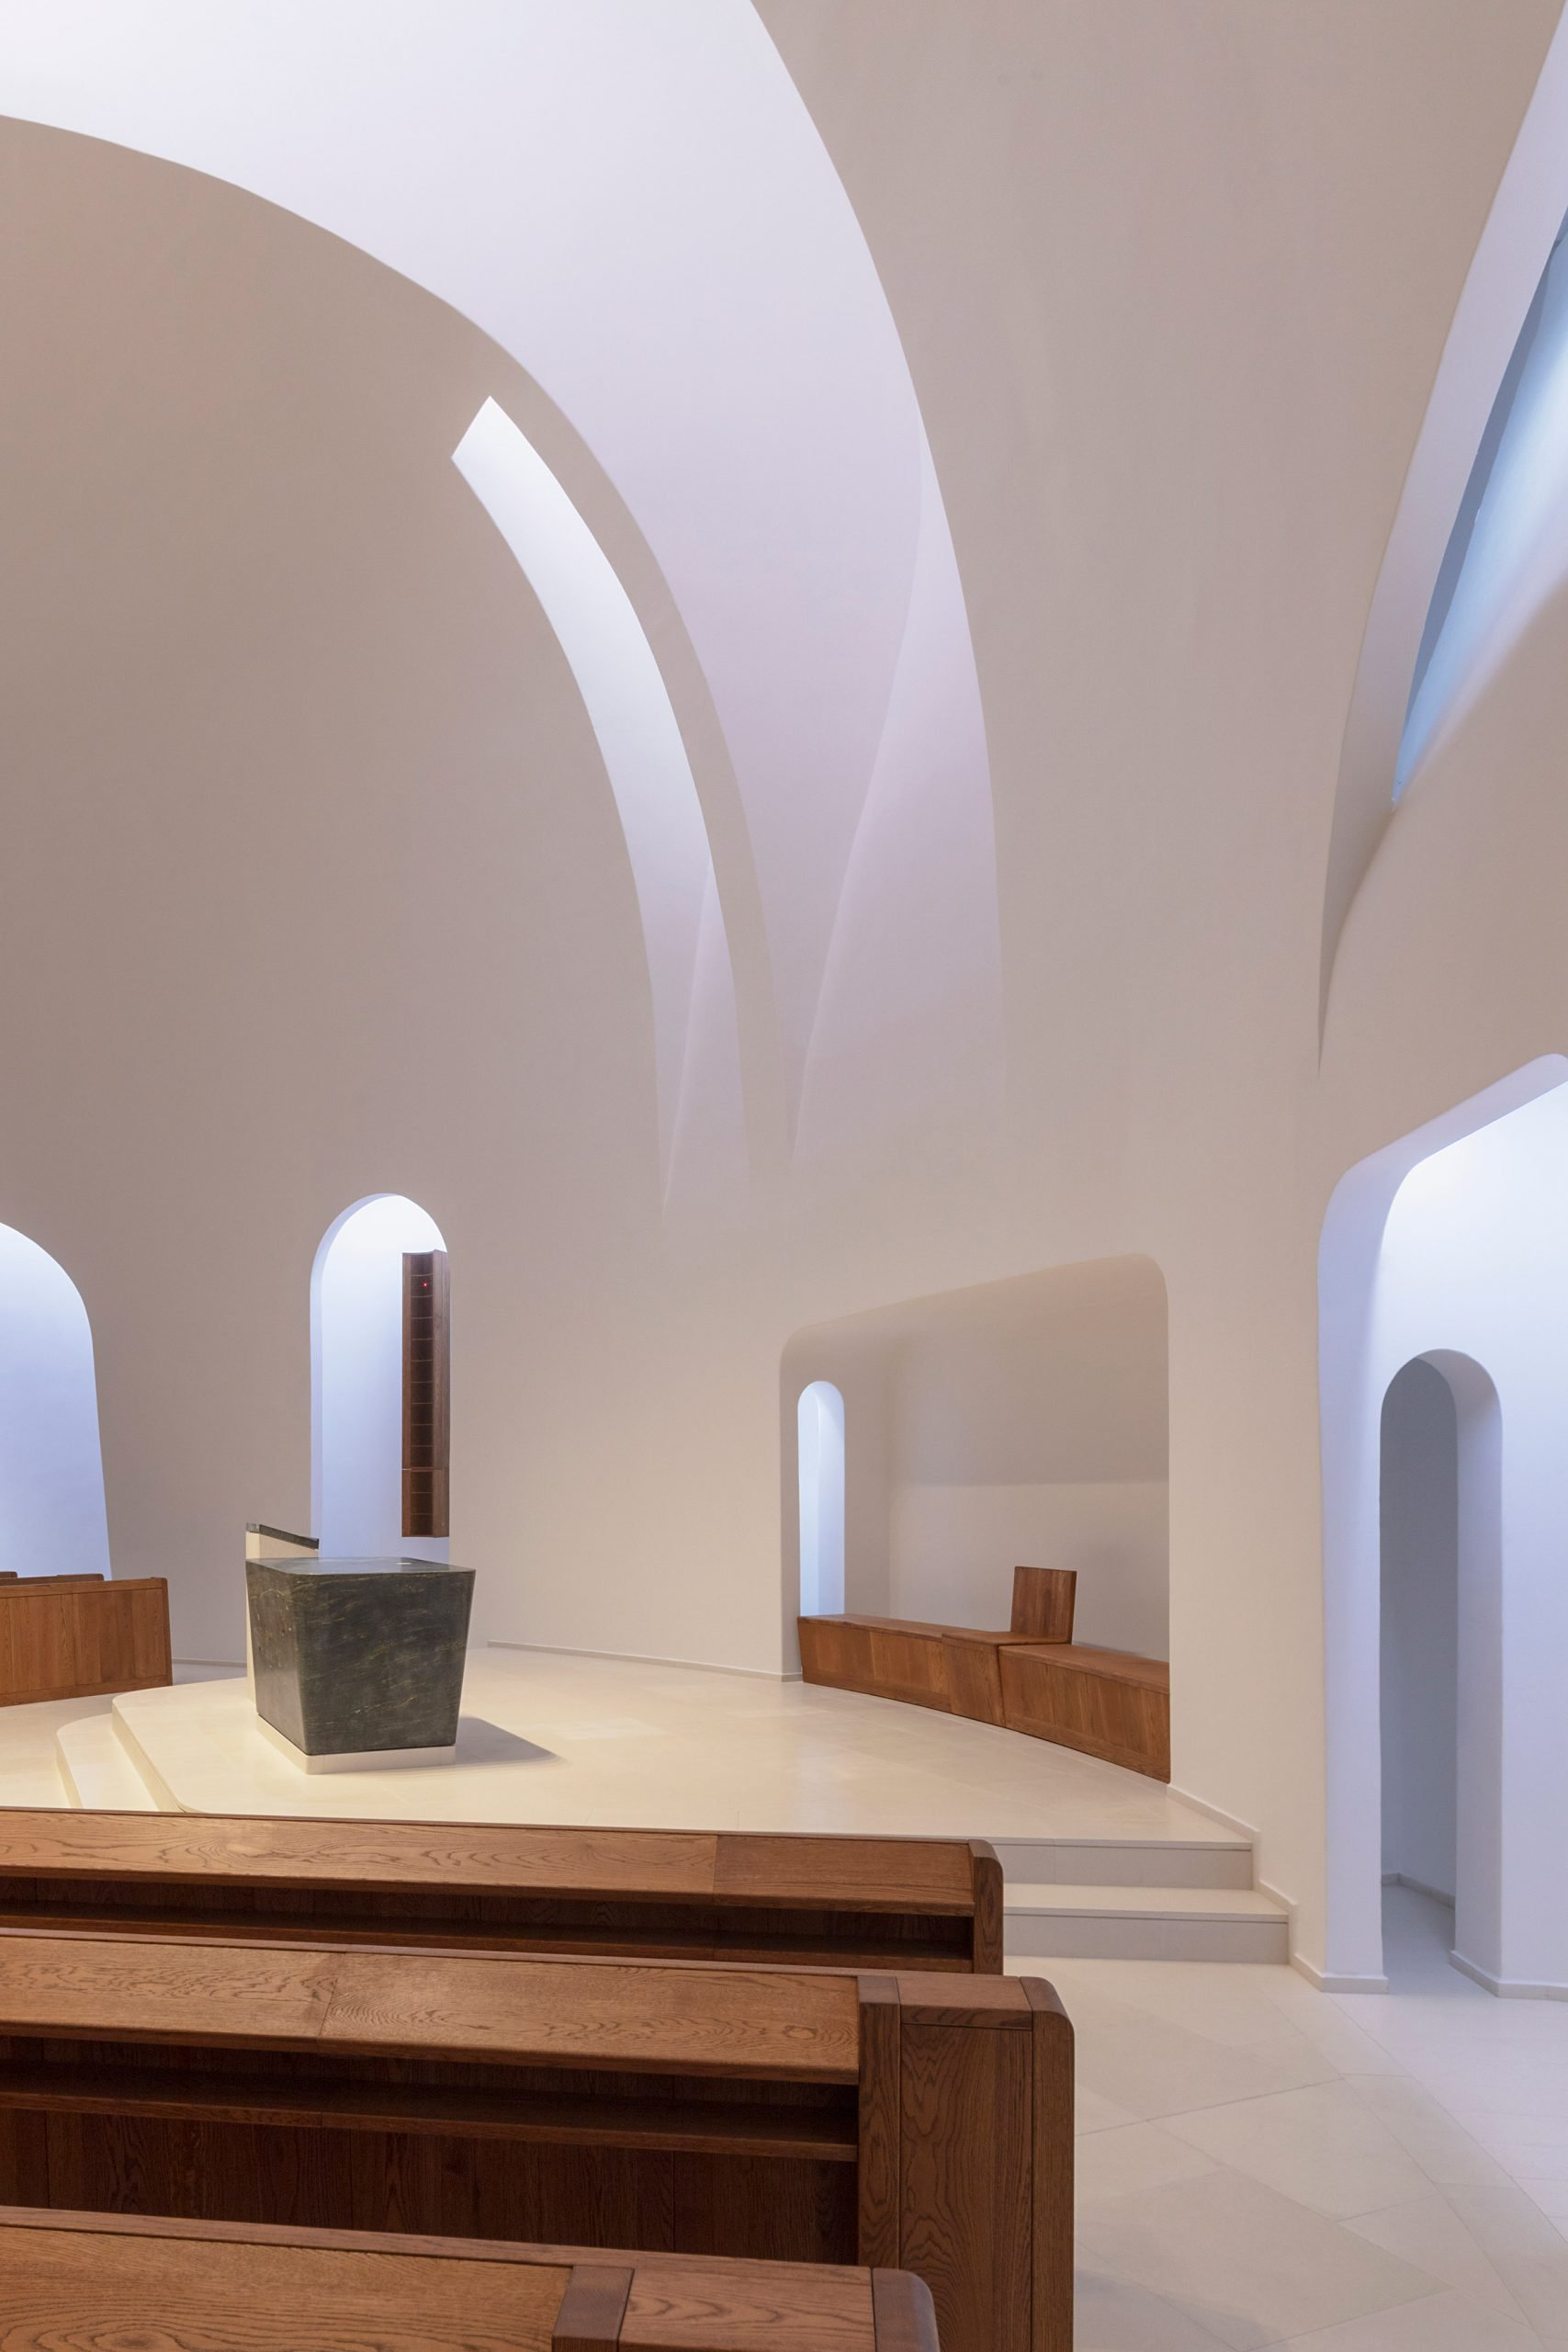 Robert Gutowski Architects Designs Minimal Church Interior In Response To Changes In Modern Worship Free Autocad Blocks Drawings Download Center